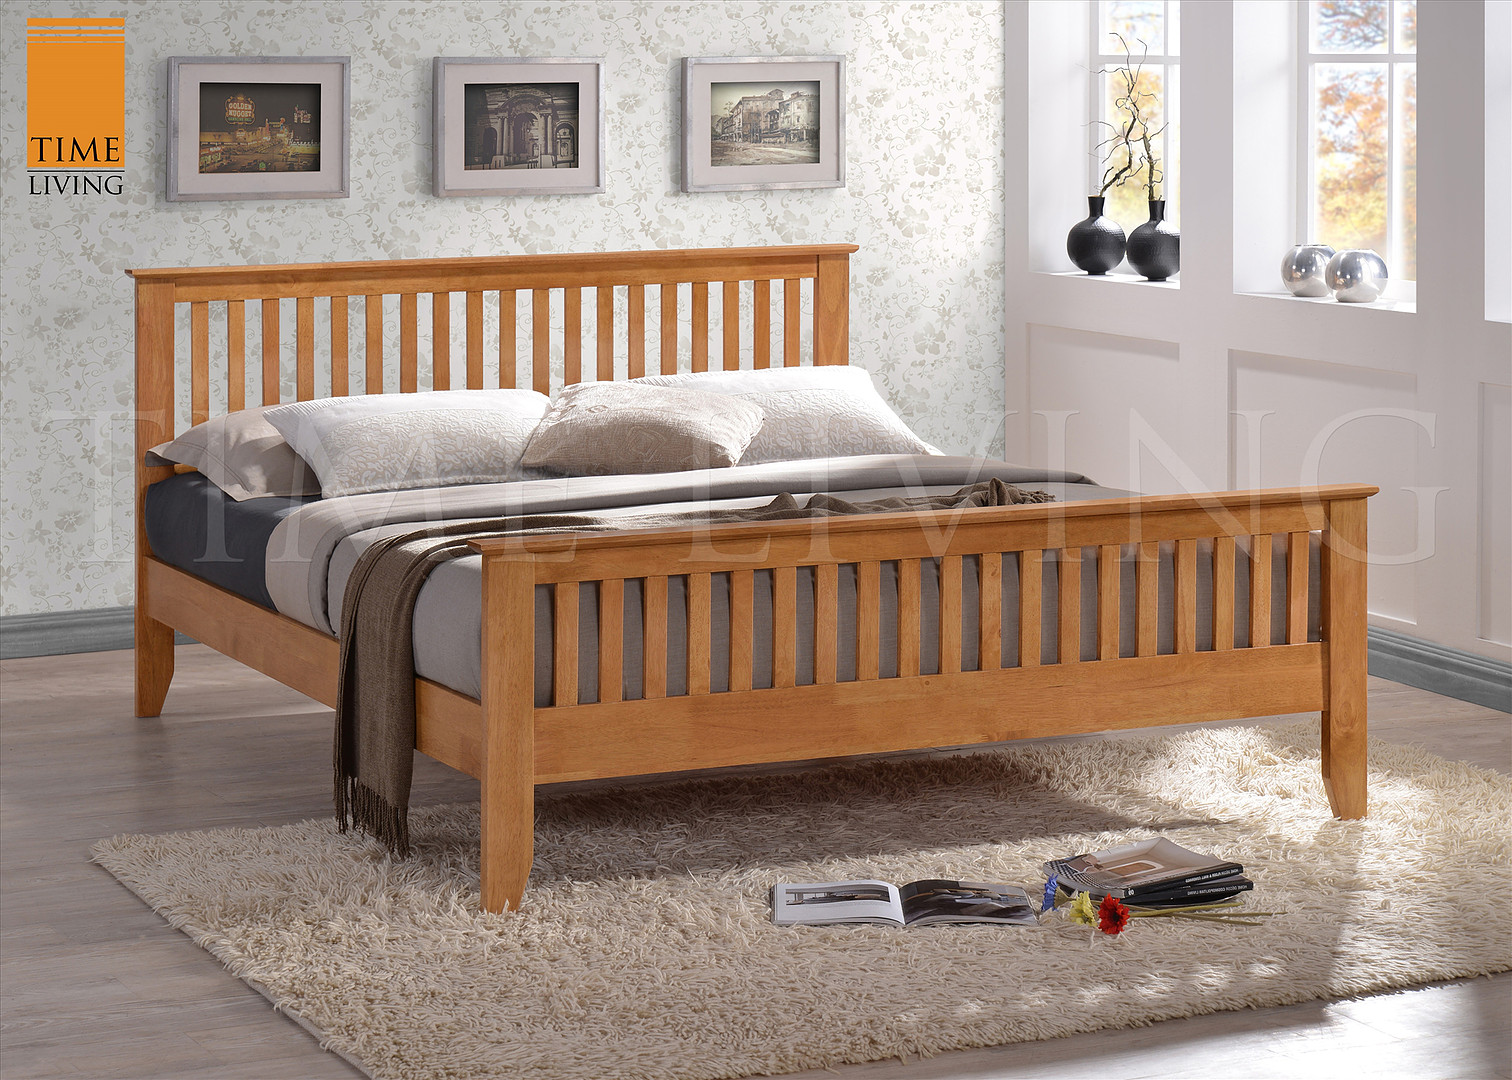 Turin Honey Oak 4ft6 Double Bed Frame 163 225 Beds Direct